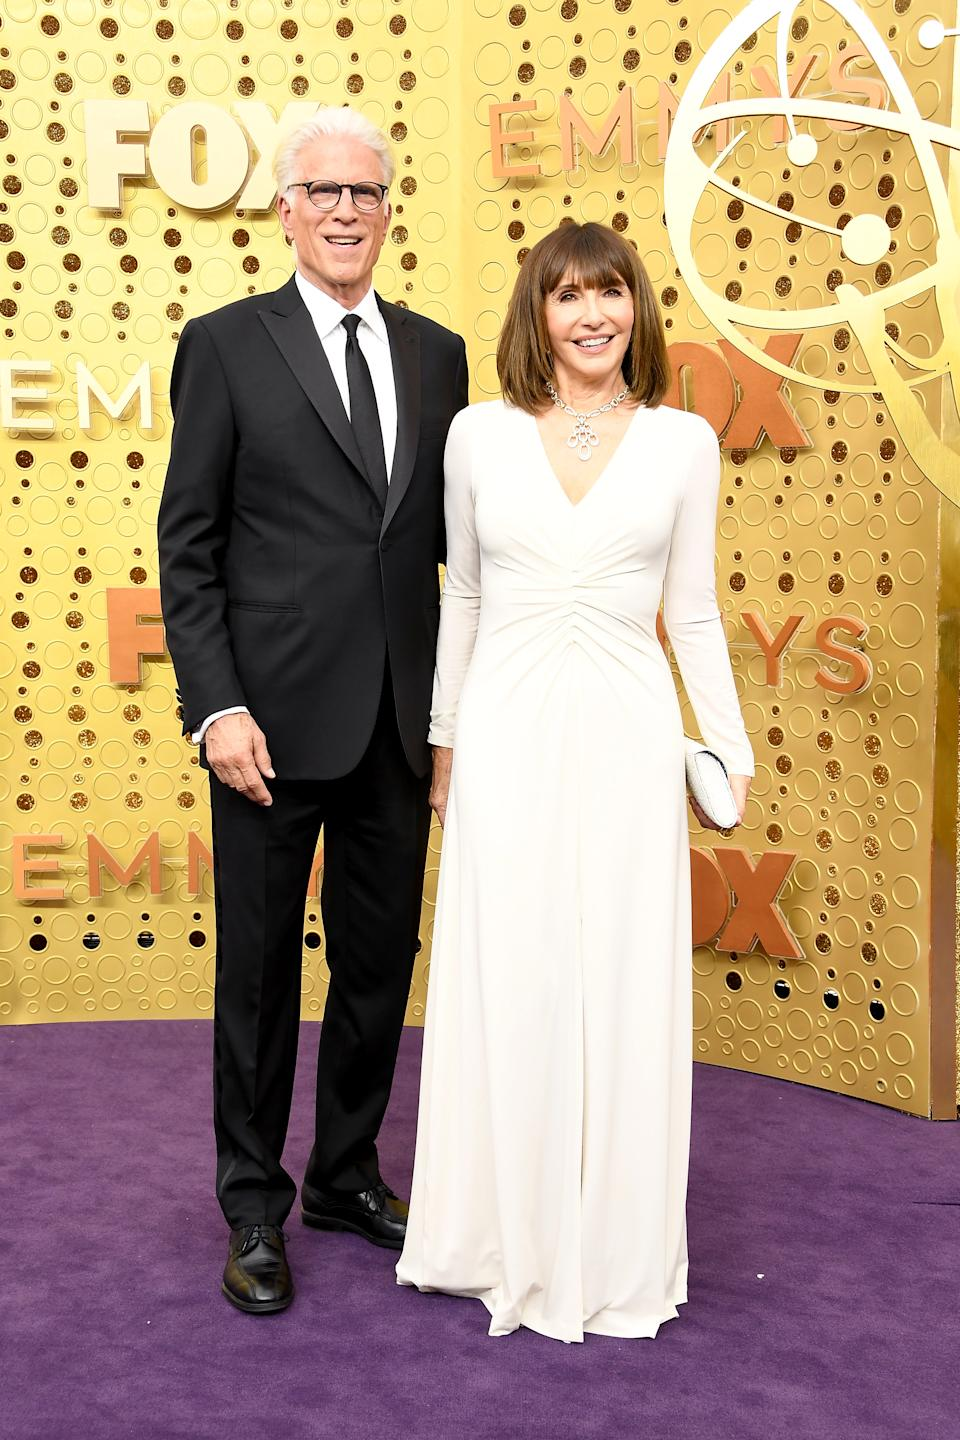 """Ted Danson and wife Mary Steenburgen were all smiles as they arrived to celebrate Danson's nomination for """"Outstanding Lead Actor in a Comedy Series"""" for his role on 'The Good Place'. [Photo: Getty]"""